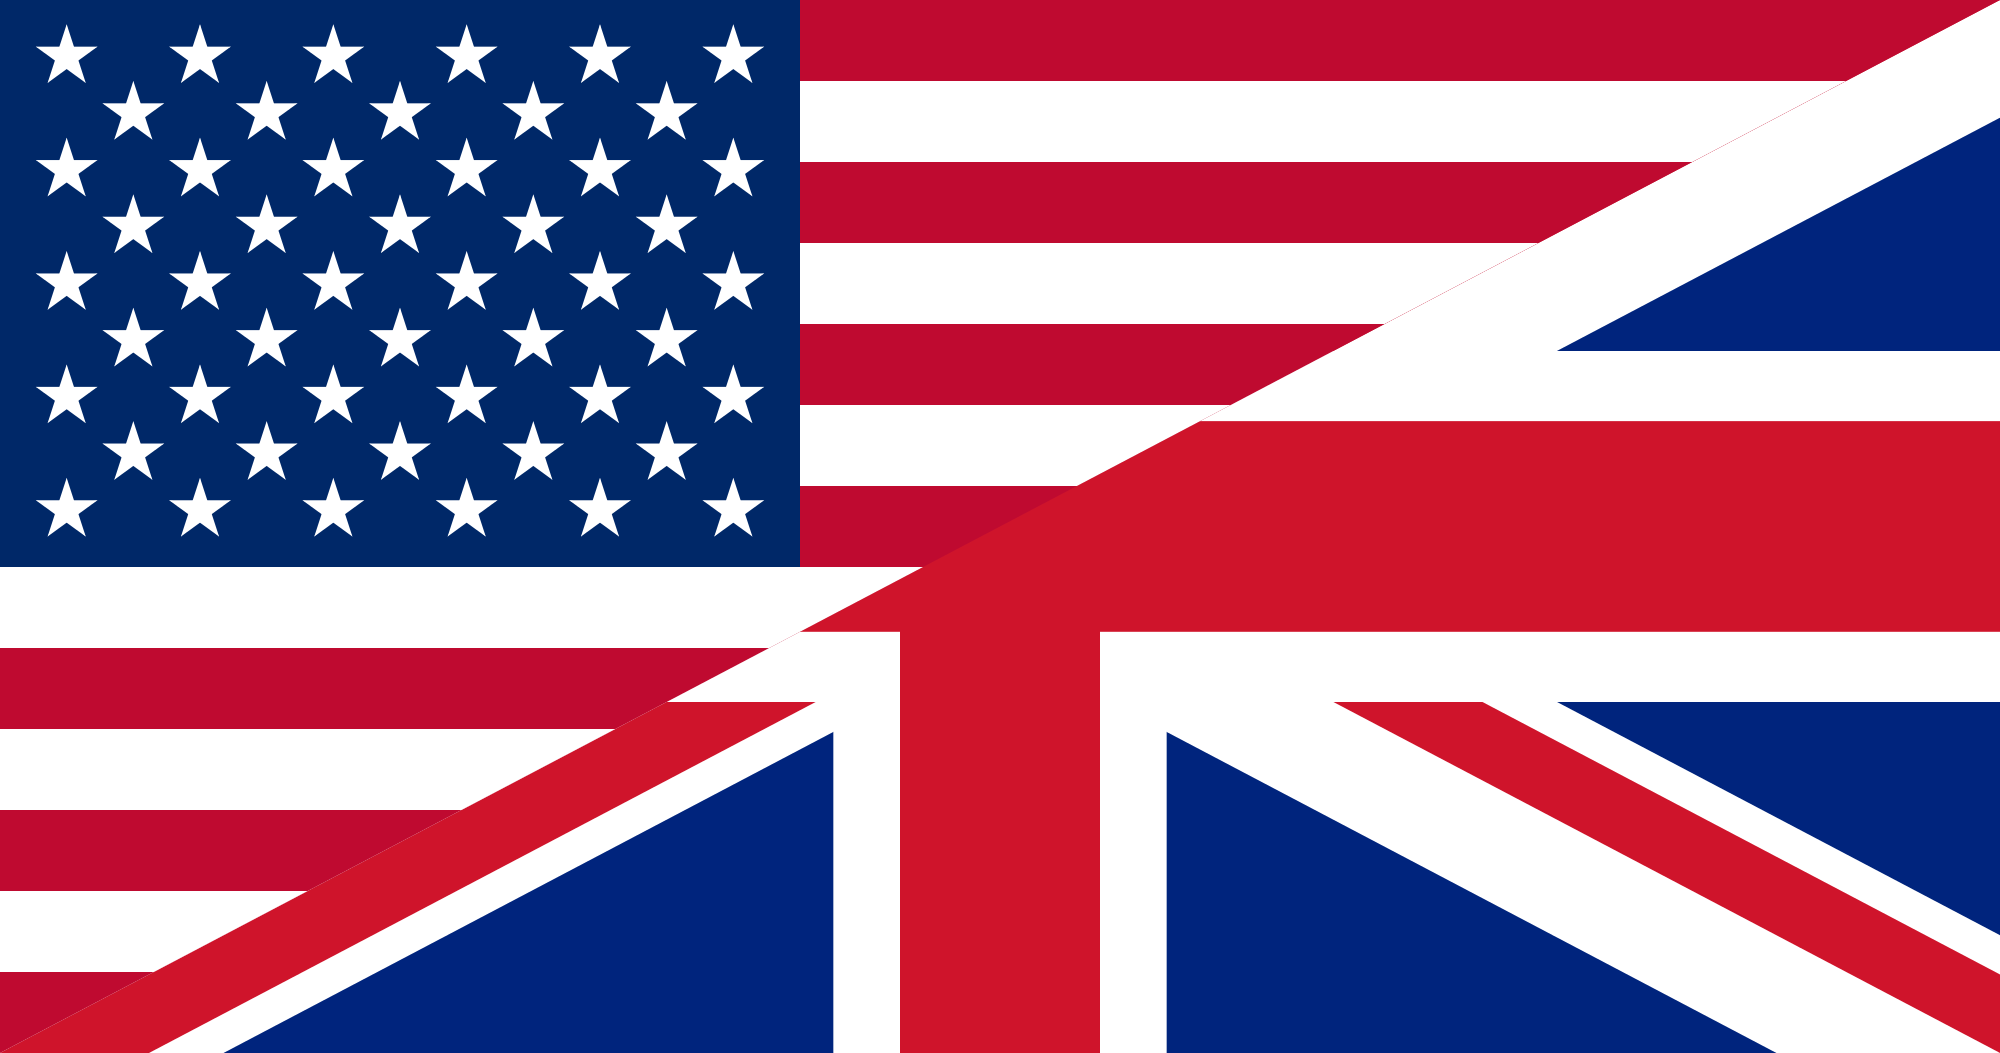 U.S. British Flags